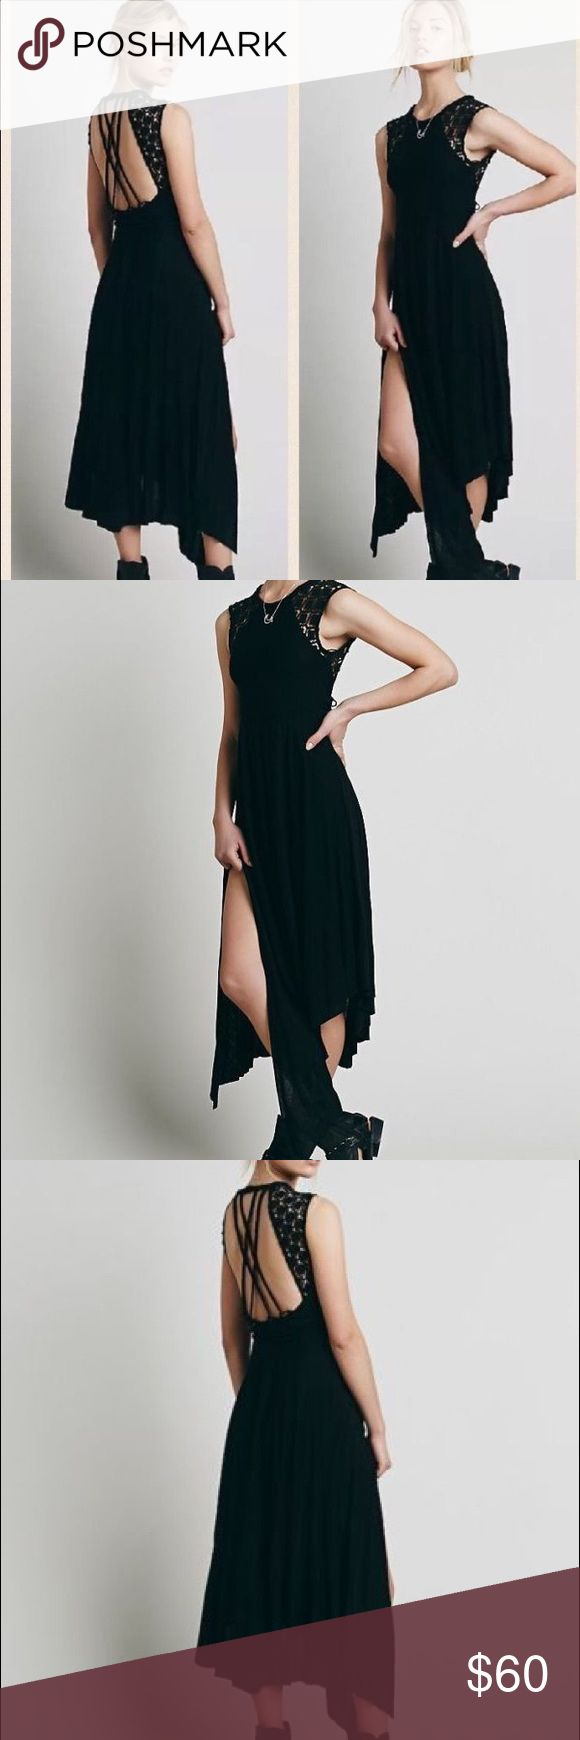 Free People Afternoon Delight Black Midi Dress M Free People Afternoon Delight Black Strappy Back Side Slit Midi Dress Medium. Good used condition Free People Dresses Midi